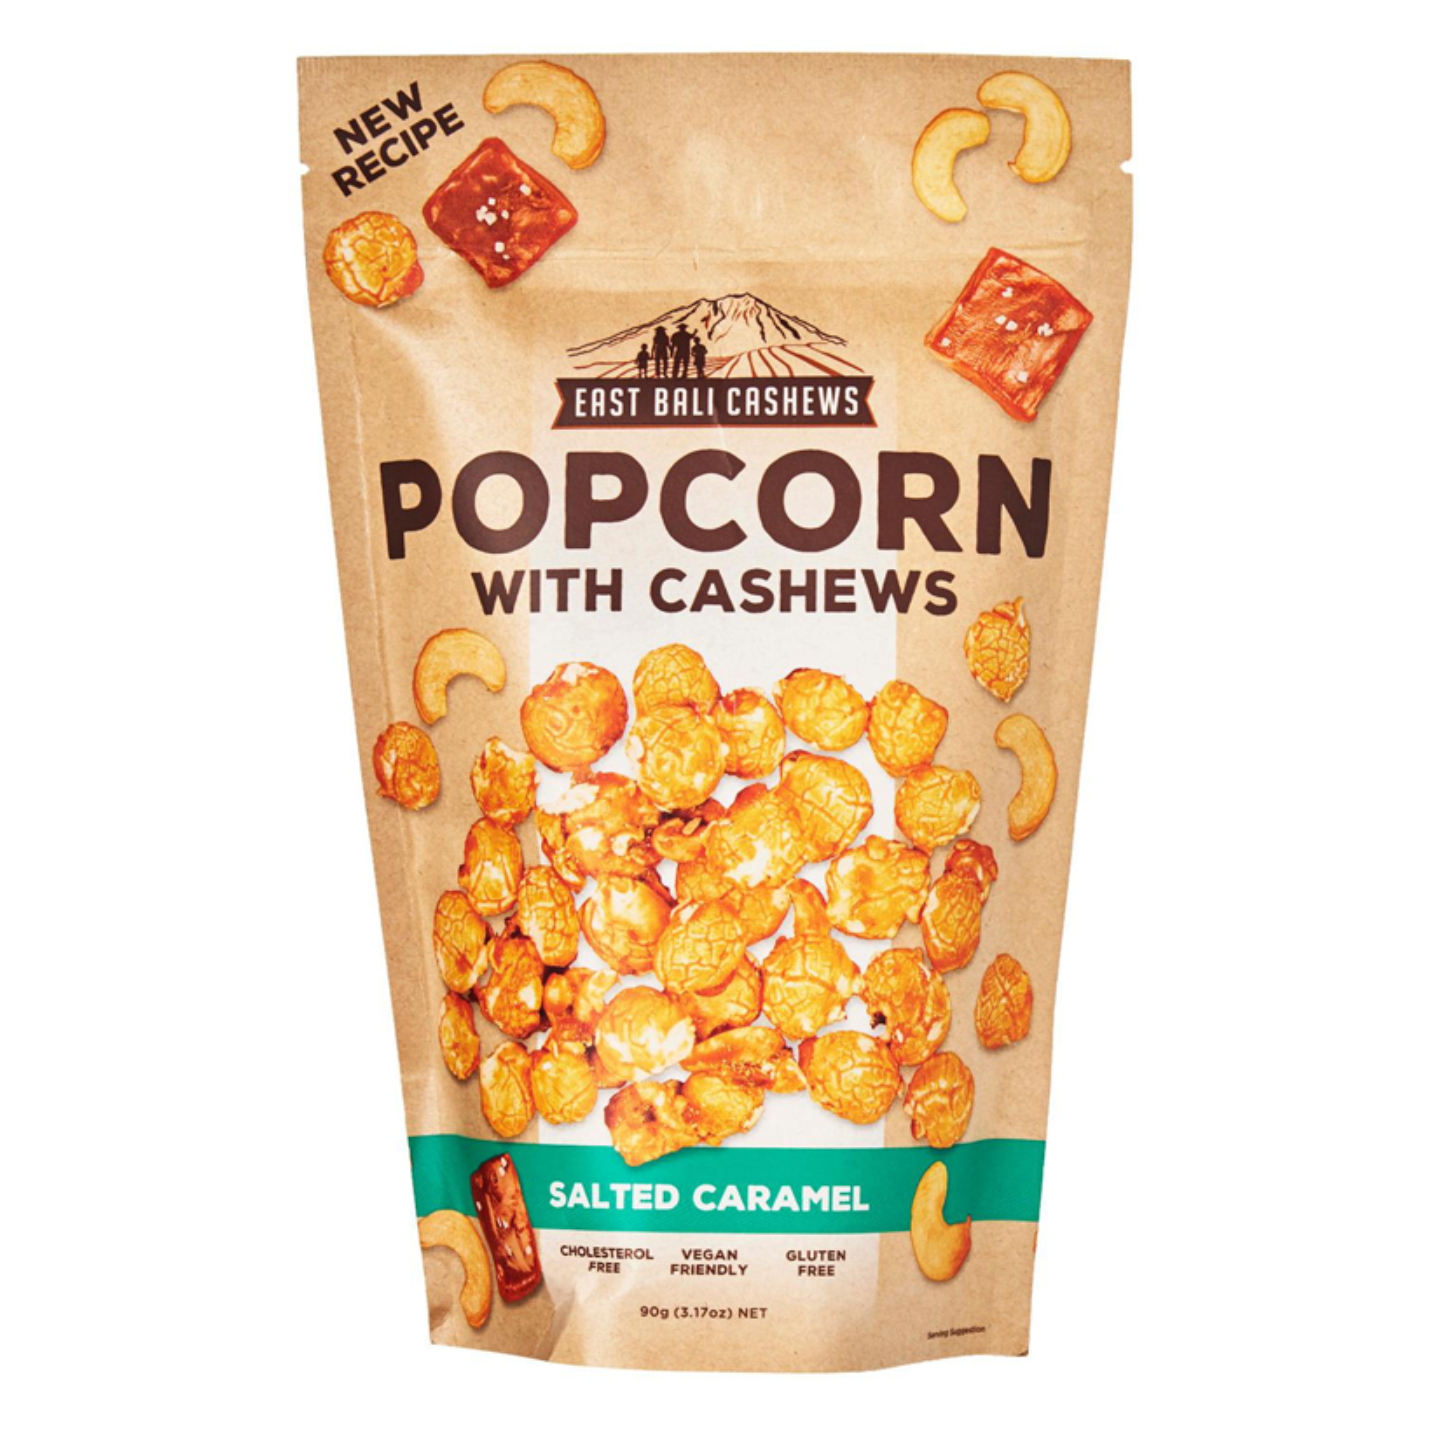 East Bali Cashews Salted Caramel Popcorn with Cashews 90g